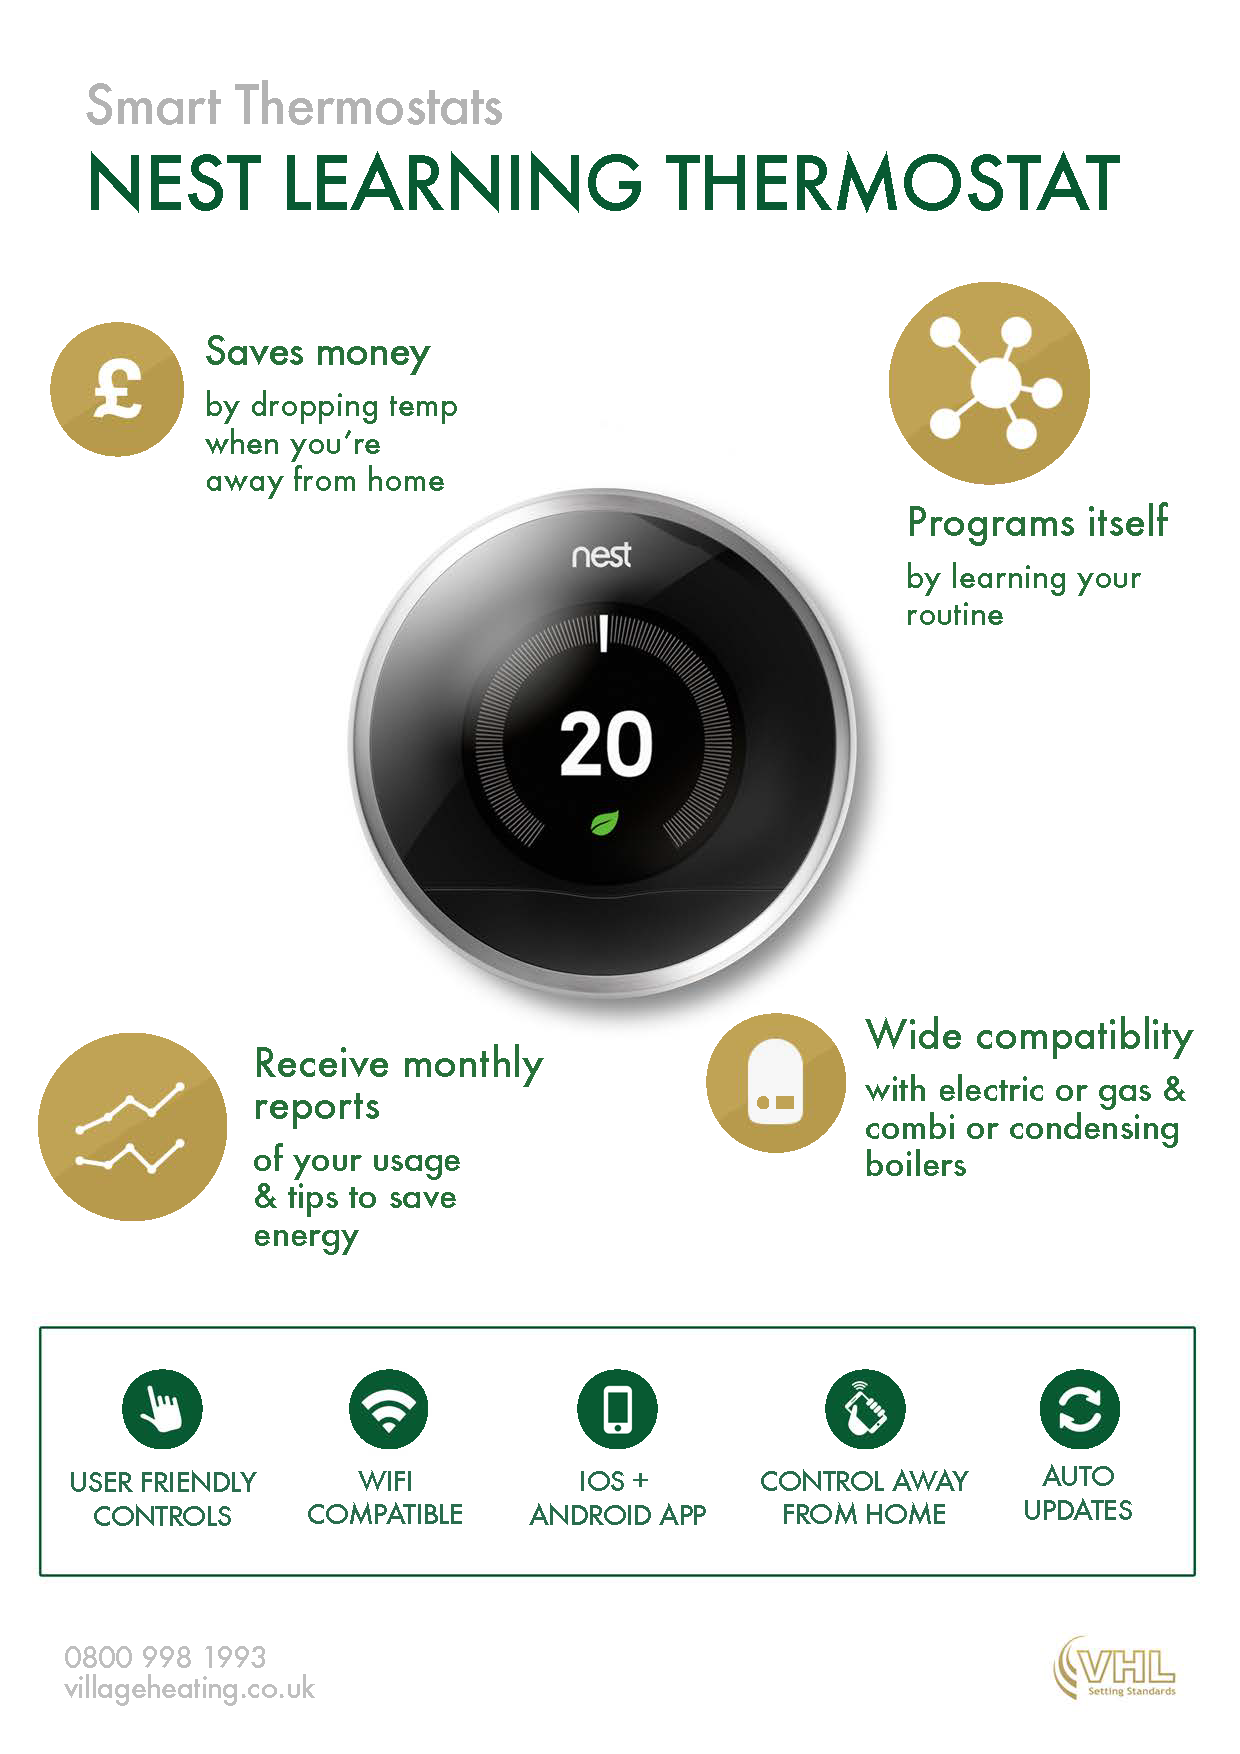 Nest Learning Thermostat benefits